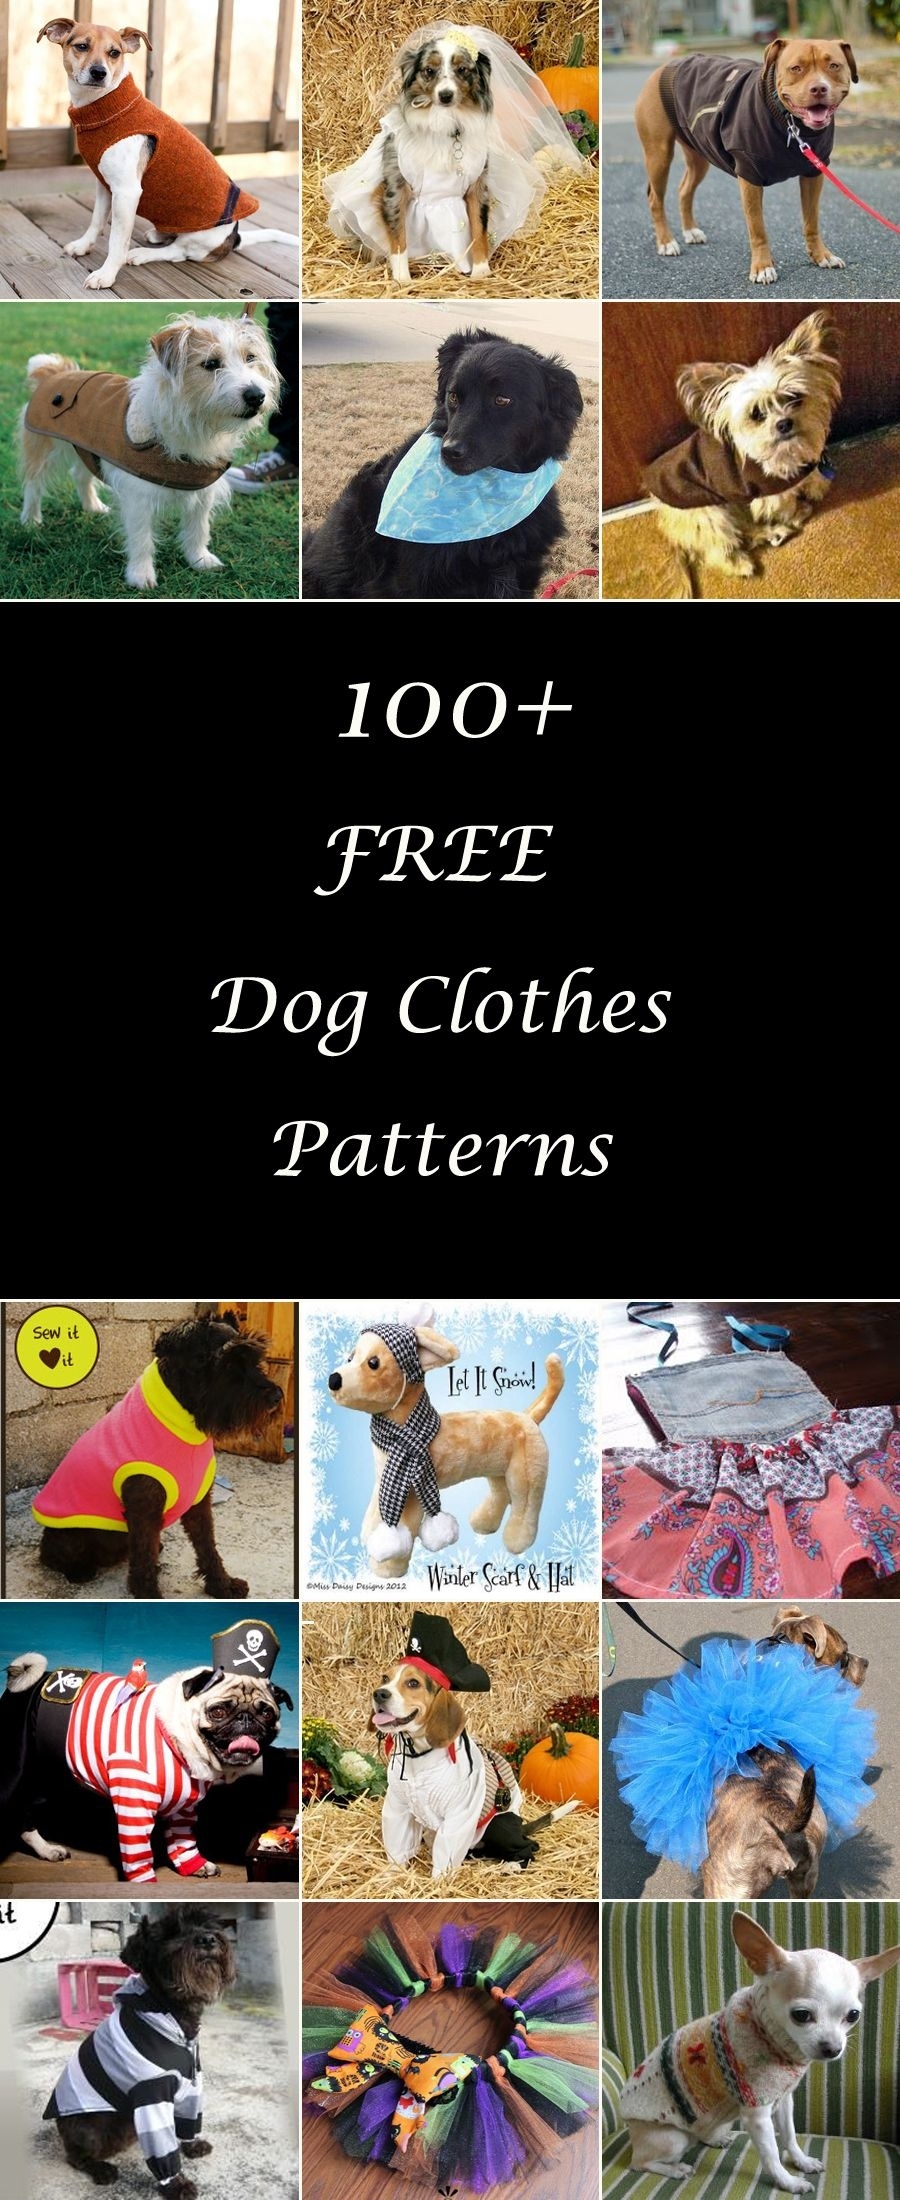 100+ Free Dog Clothes Patterns   Adorable Animals   Dog Clothes - Free Printable Sewing Patterns For Dog Clothes